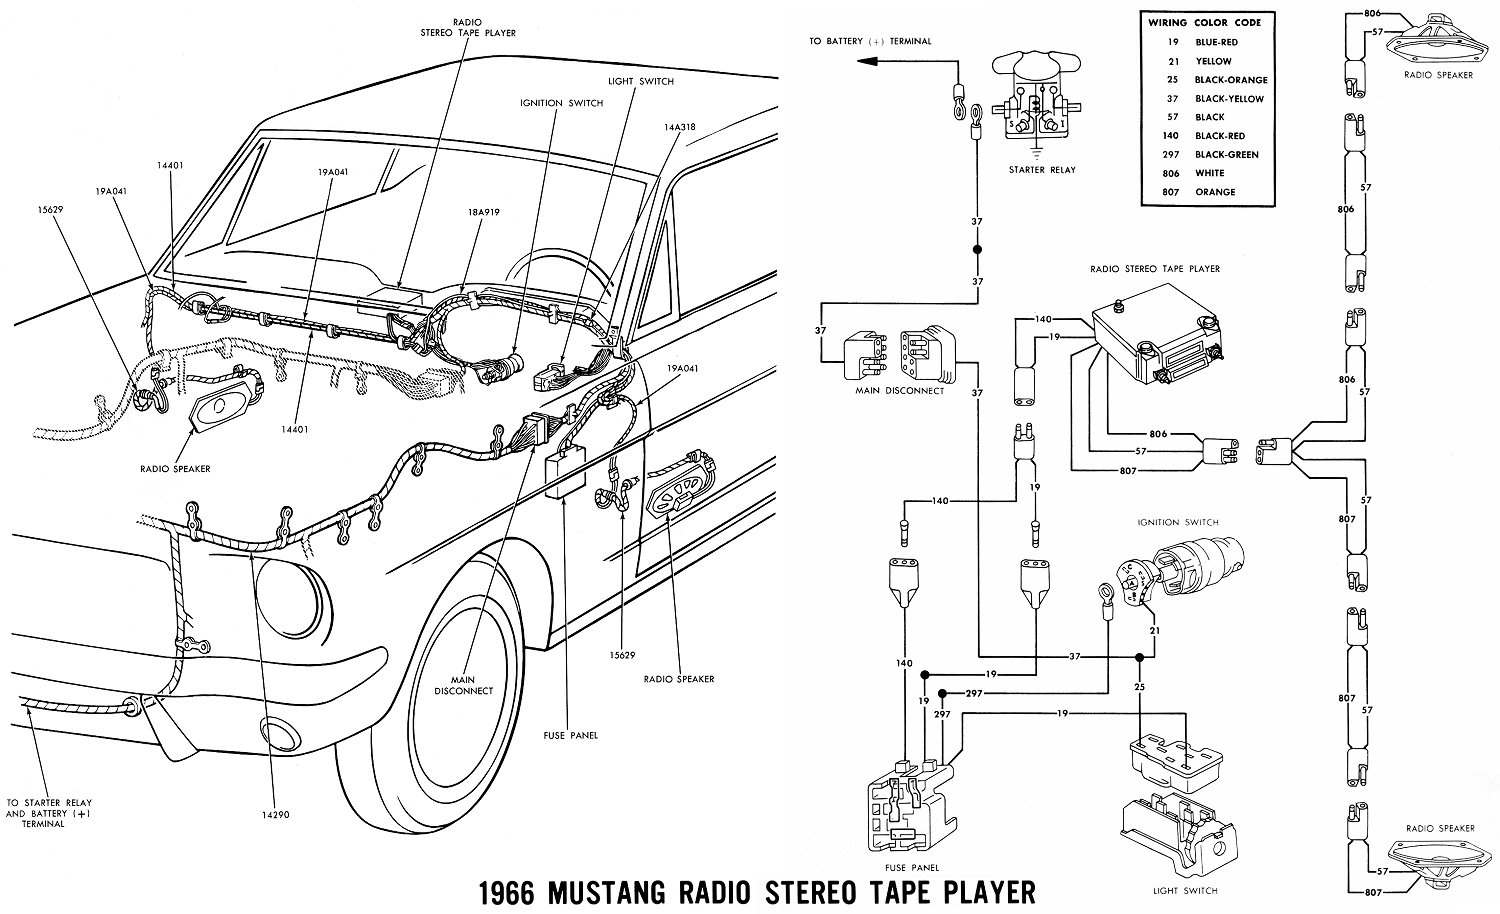 hight resolution of 1966 mustang wiring diagrams average joe restoration 1966 mustang horn wiring diagram 1966 mustang heater wiring diagram